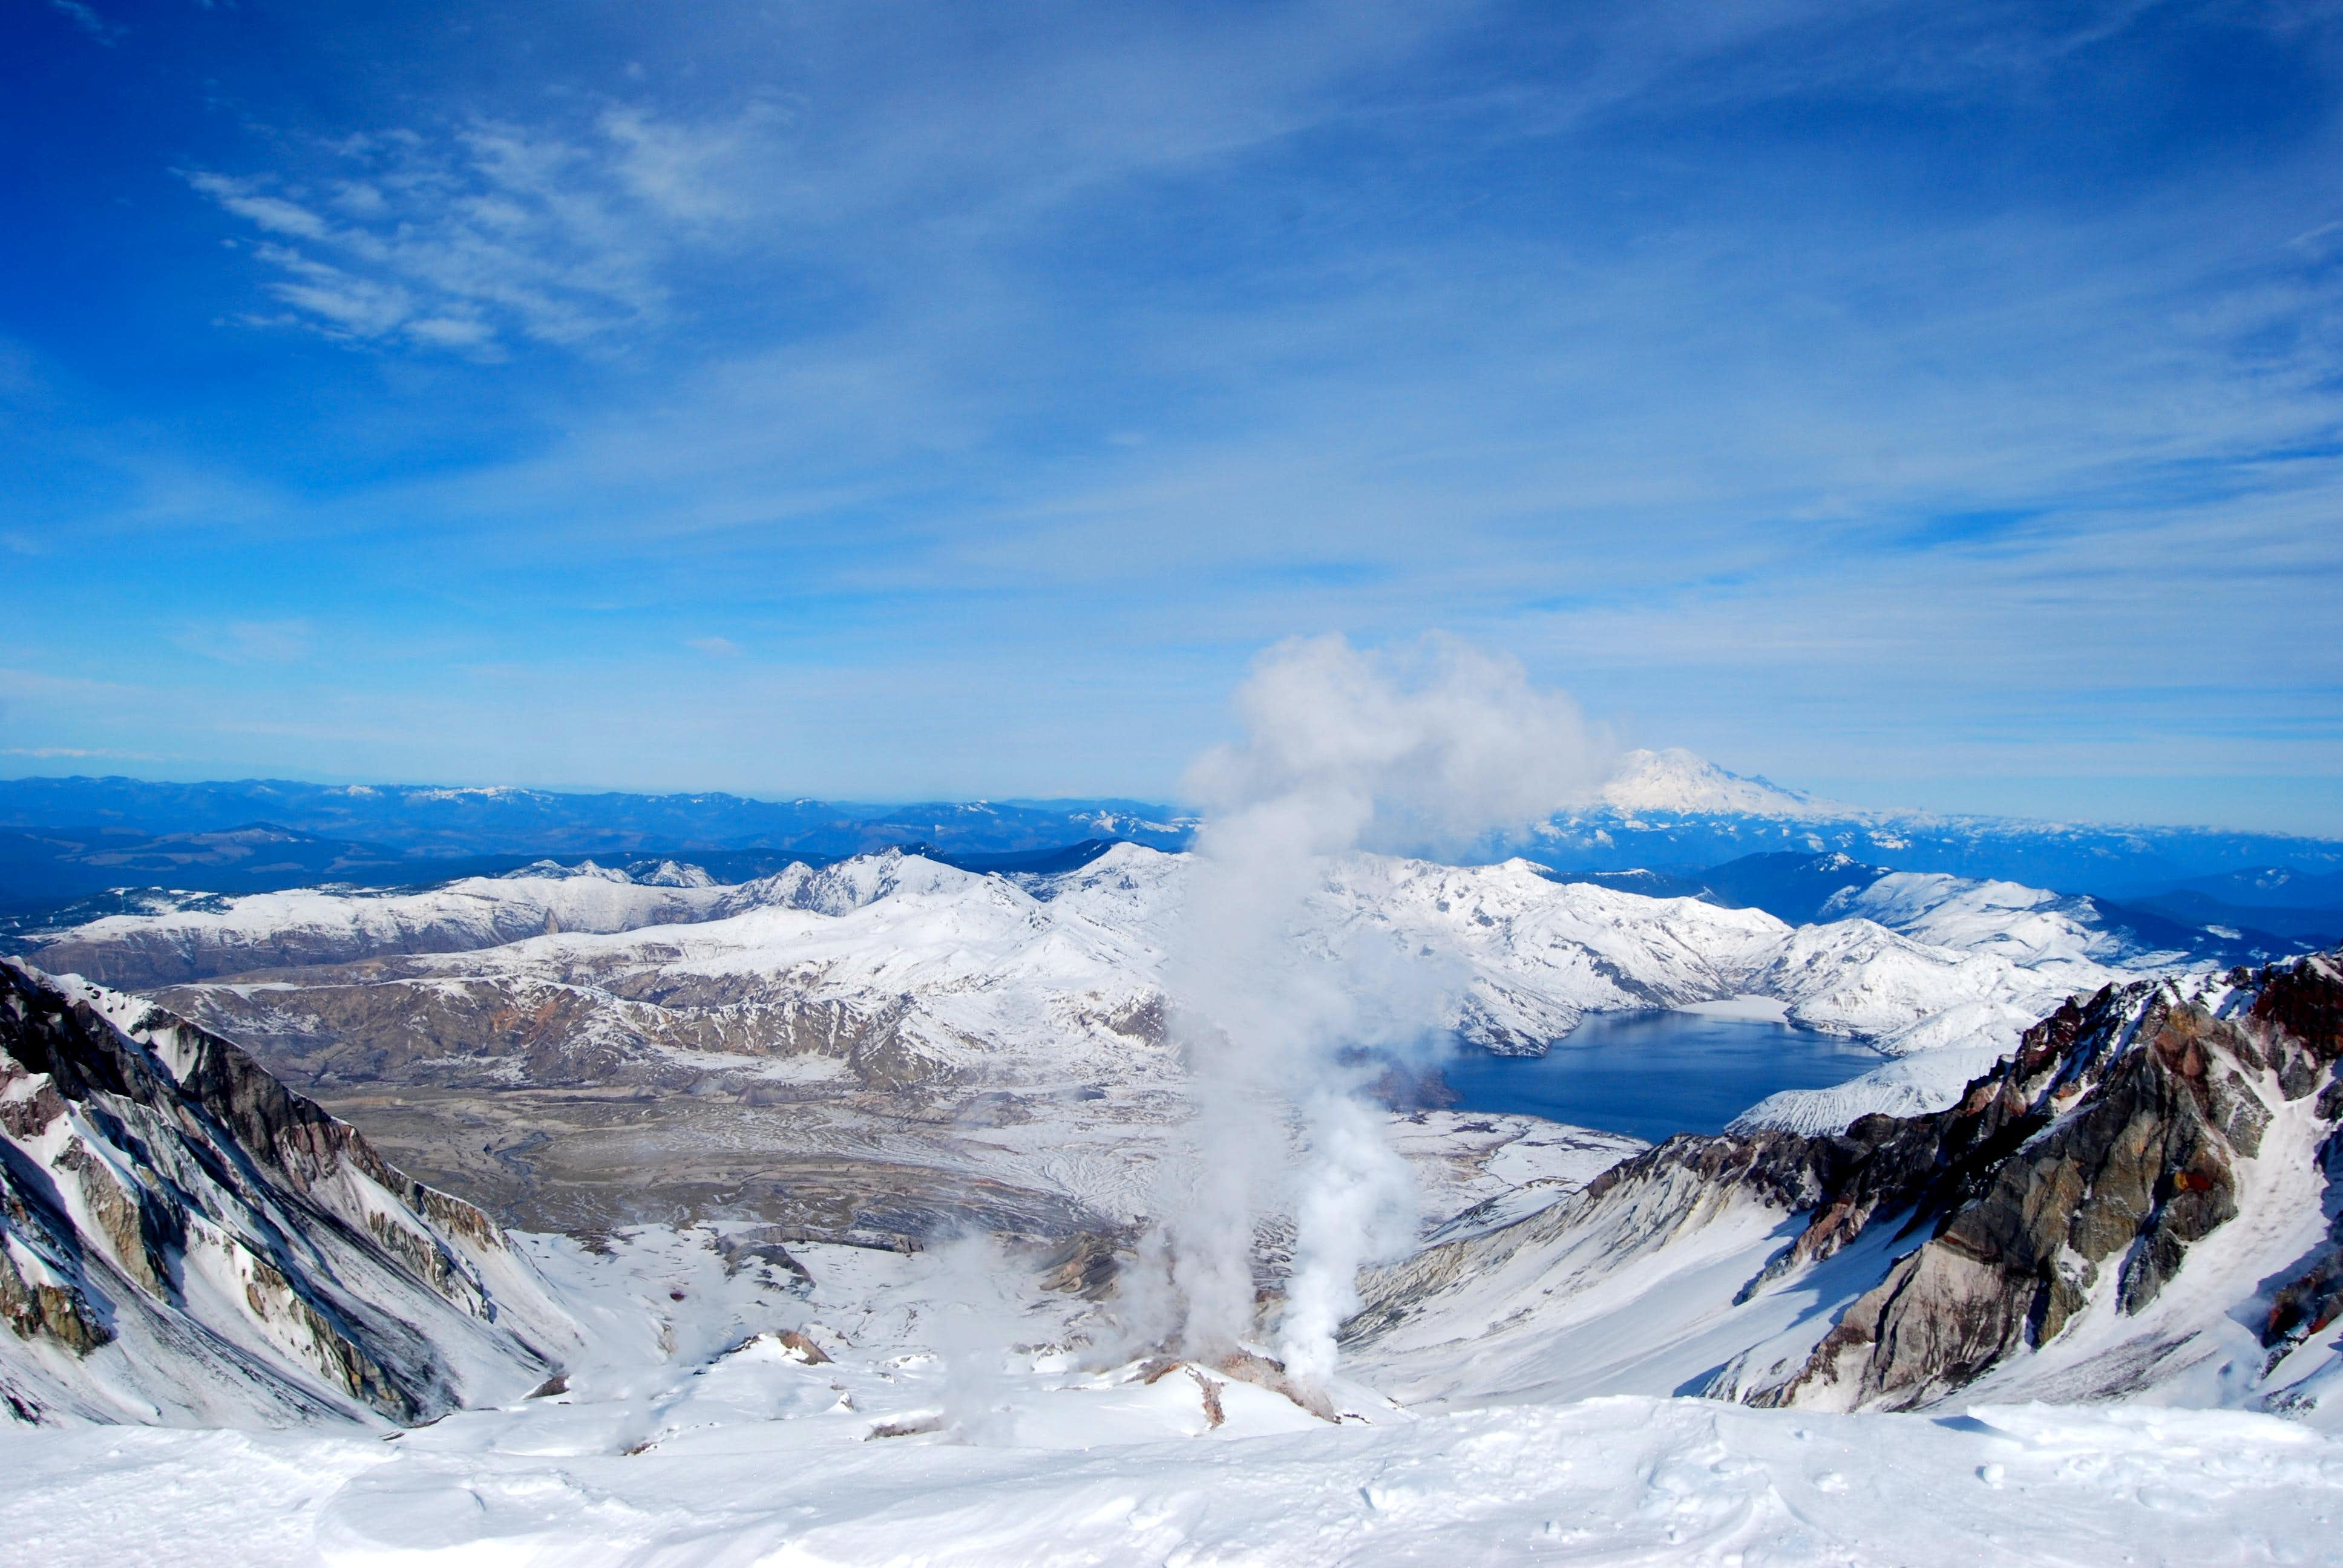 Mt. St. Helens via Worm Flows: February 5th 2012